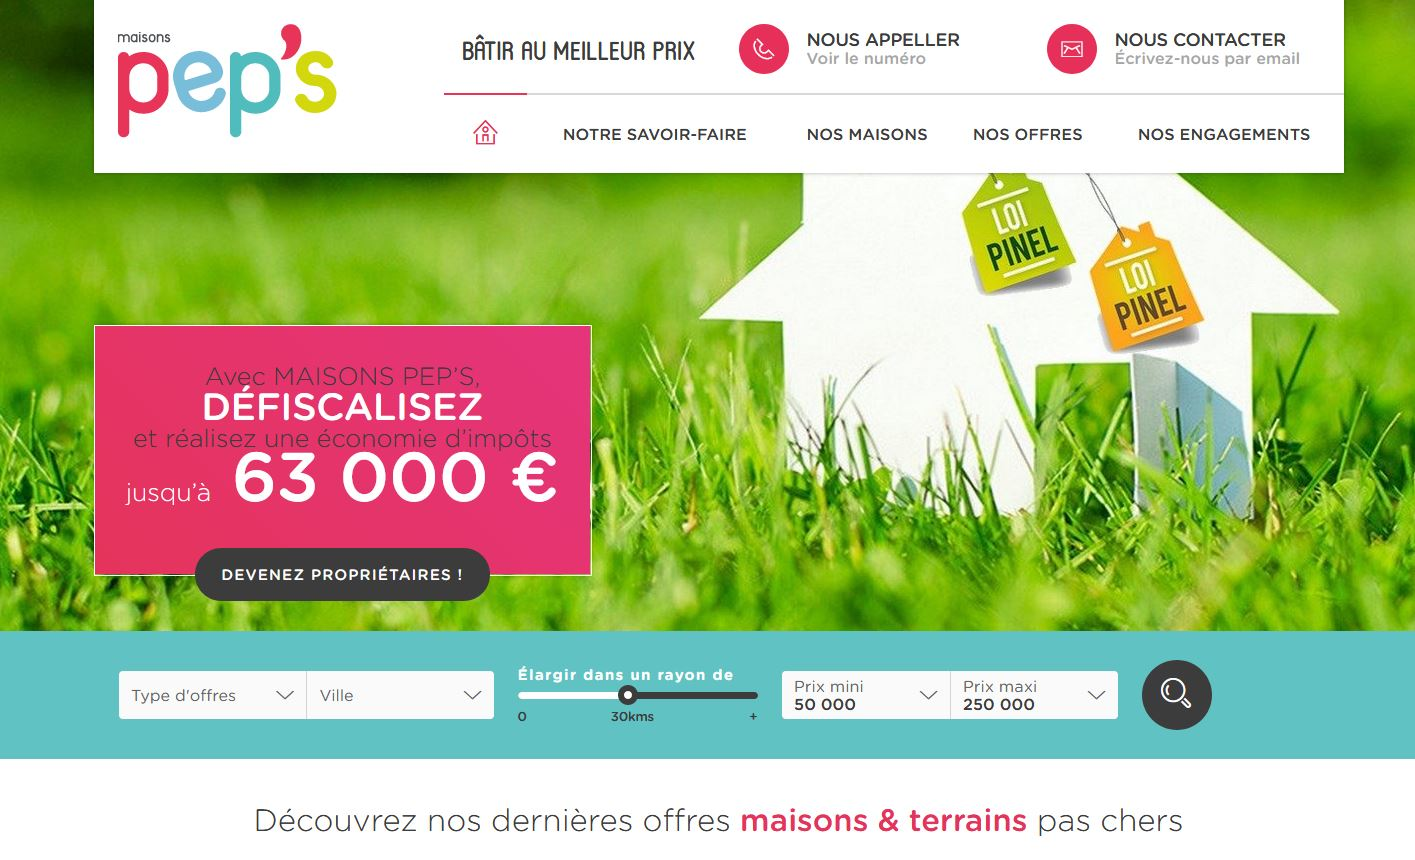 immobilier | viping - part 2